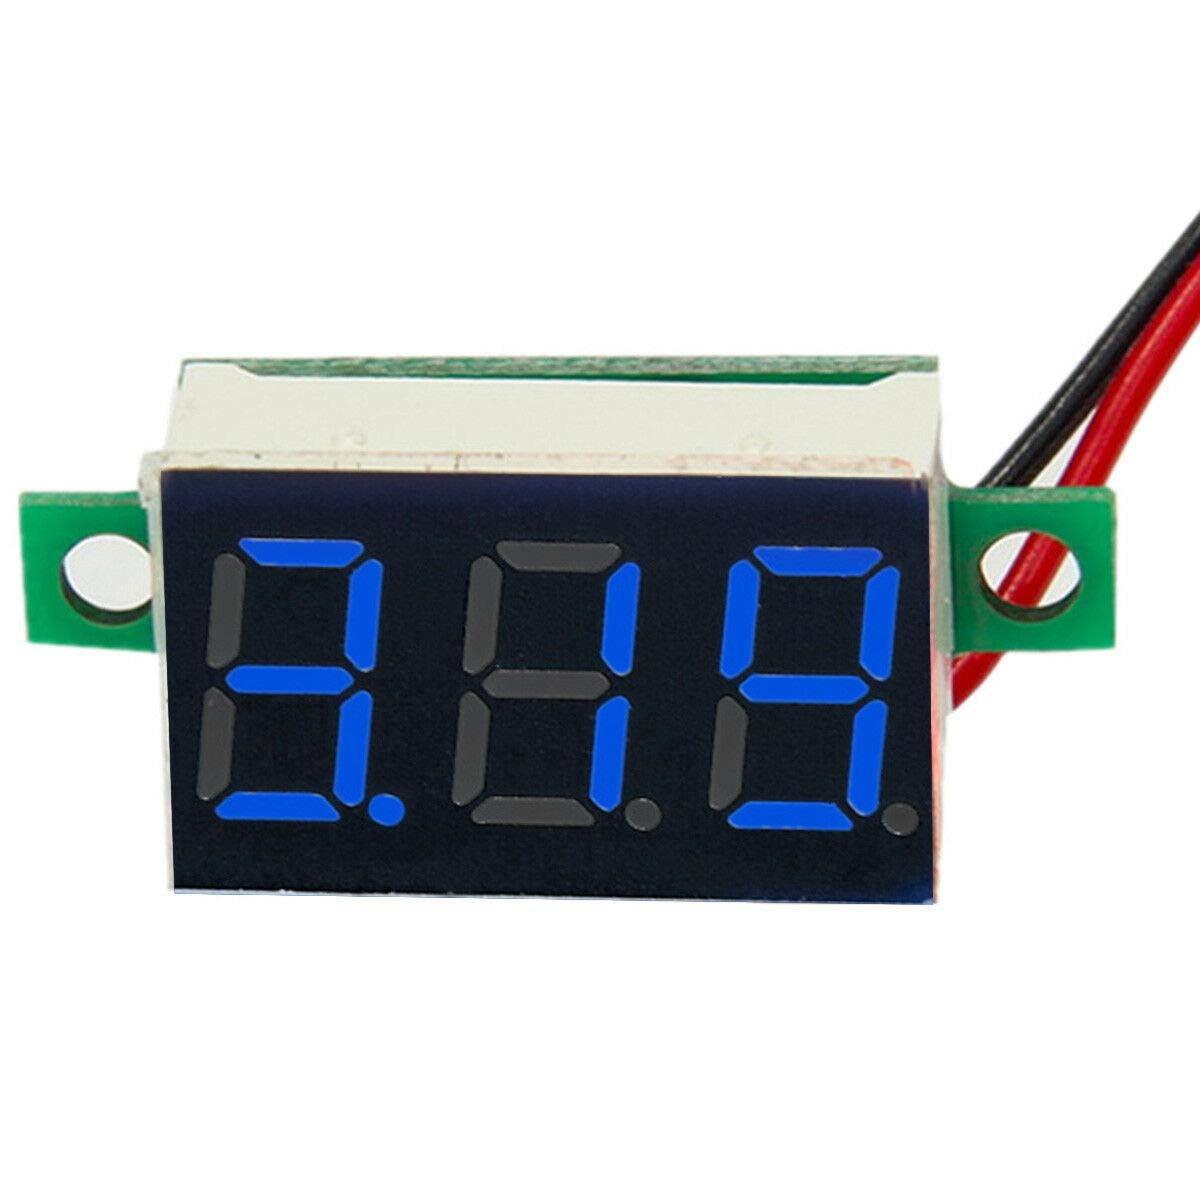 ARCELI Digital Display Two-Wire Voltmeter 0.36 Inch DC4.5V-30V DC Voltage Meter (Blue) Motorcycle Voltmeter